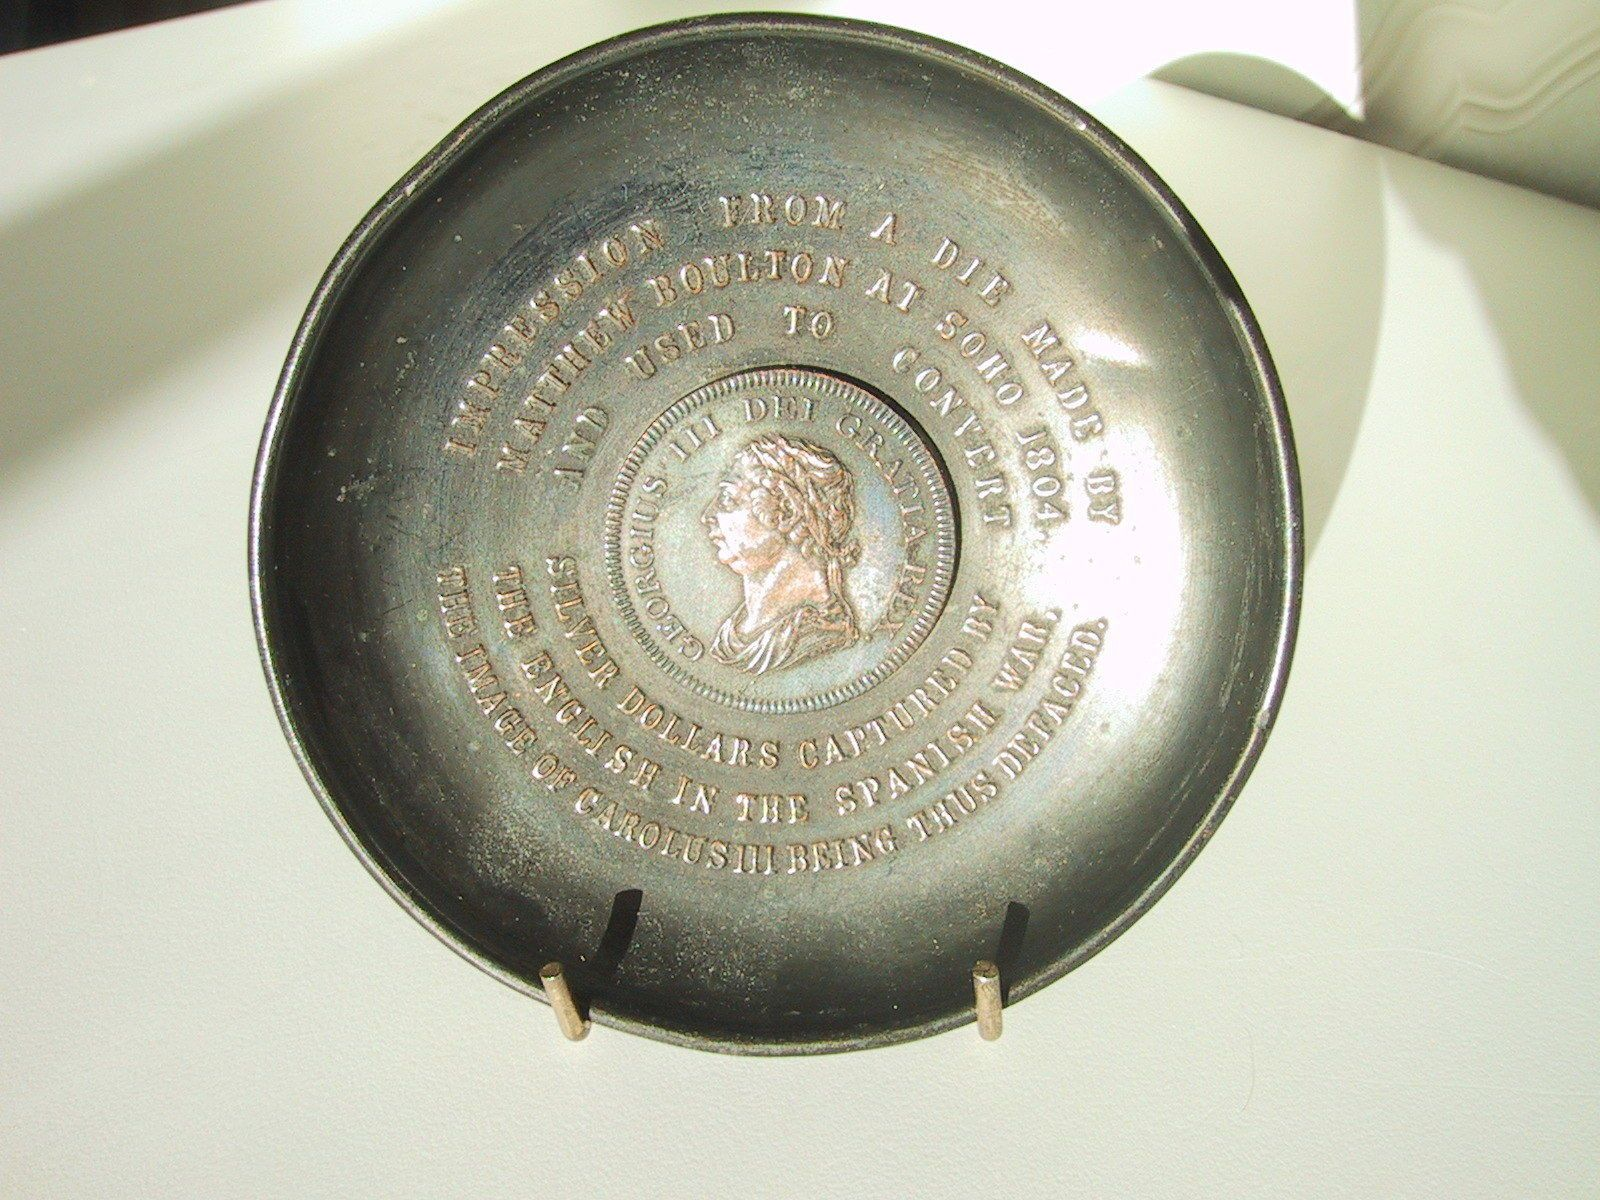 FAUX IMPRESSION FROM A DIE MADE BY MATTHEW BOULTON AT SOHO 1804 AND USED TO CONVERT SILVER DOLLARS CAPTURED BY THE ENGLISH IN THE SPANISH WAR THE IMAGE OF CAROLUS III BEING THUS DEFACED